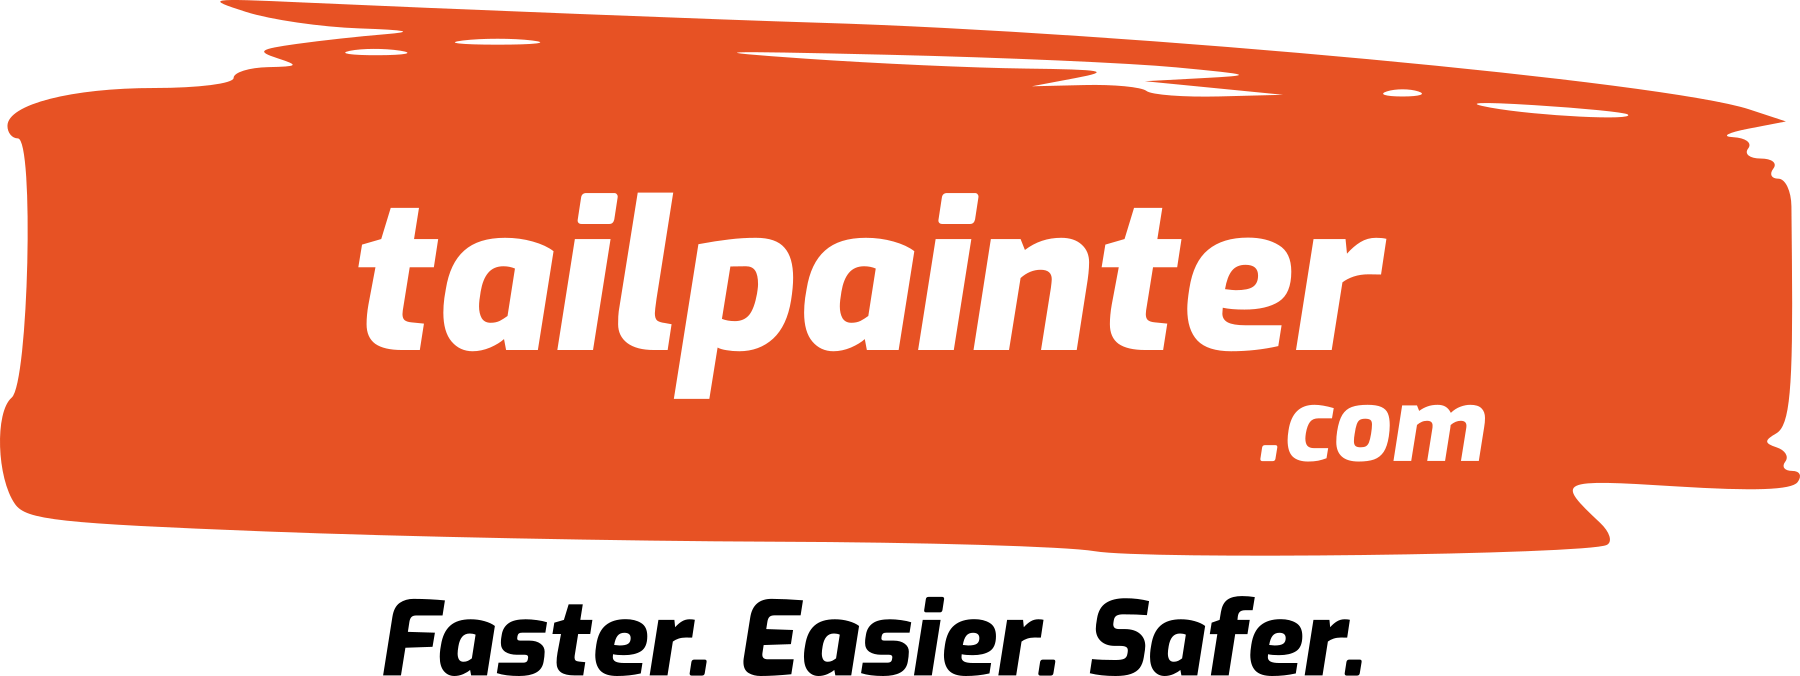 tailpainter-large.png